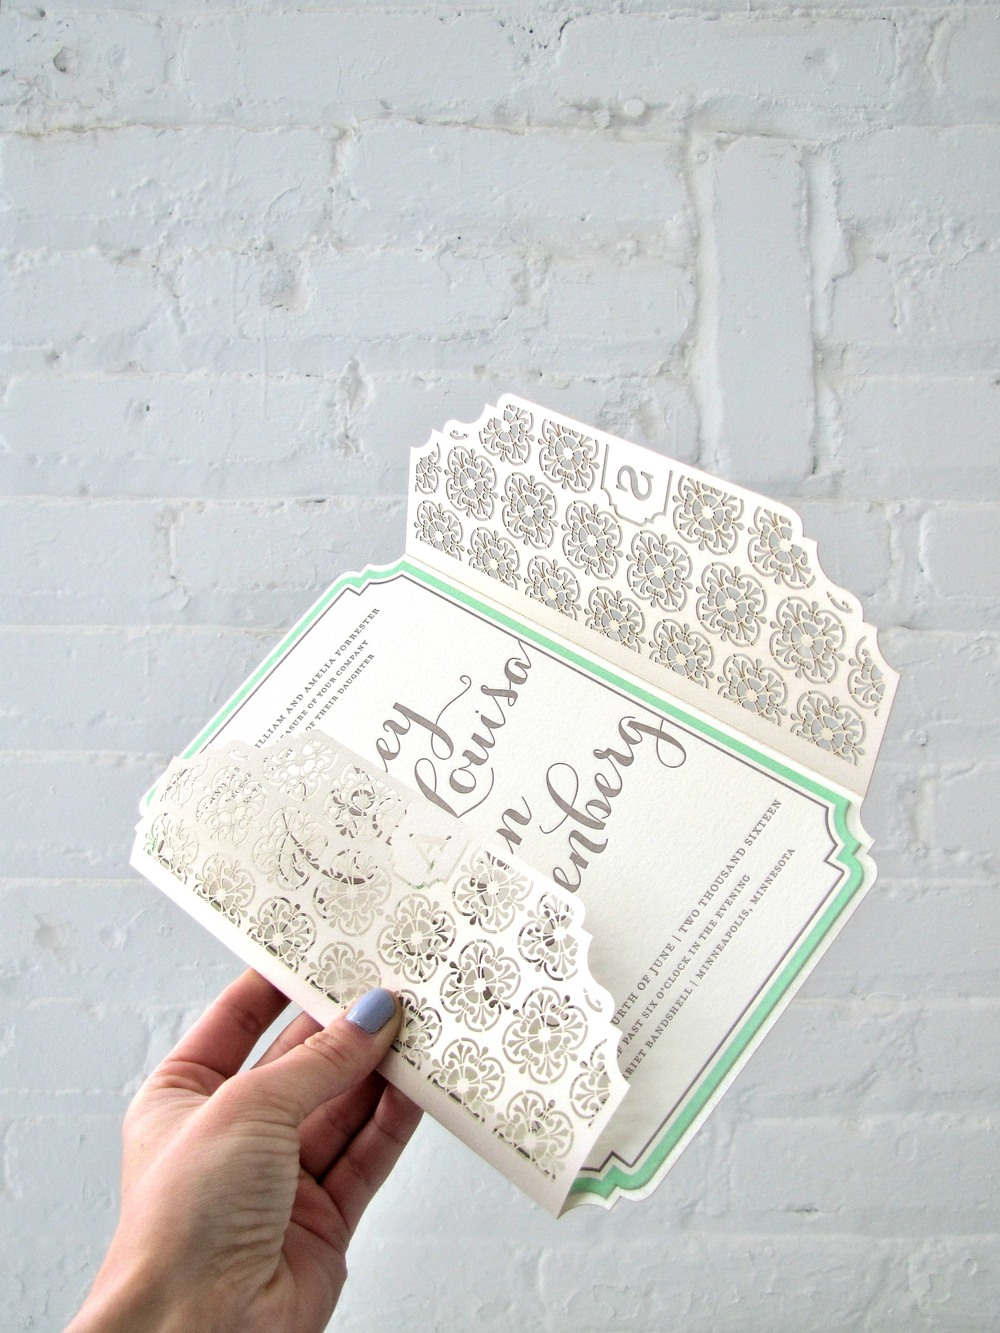 The Aubrey suite features our prettiest monogrammed laser wrap yet!